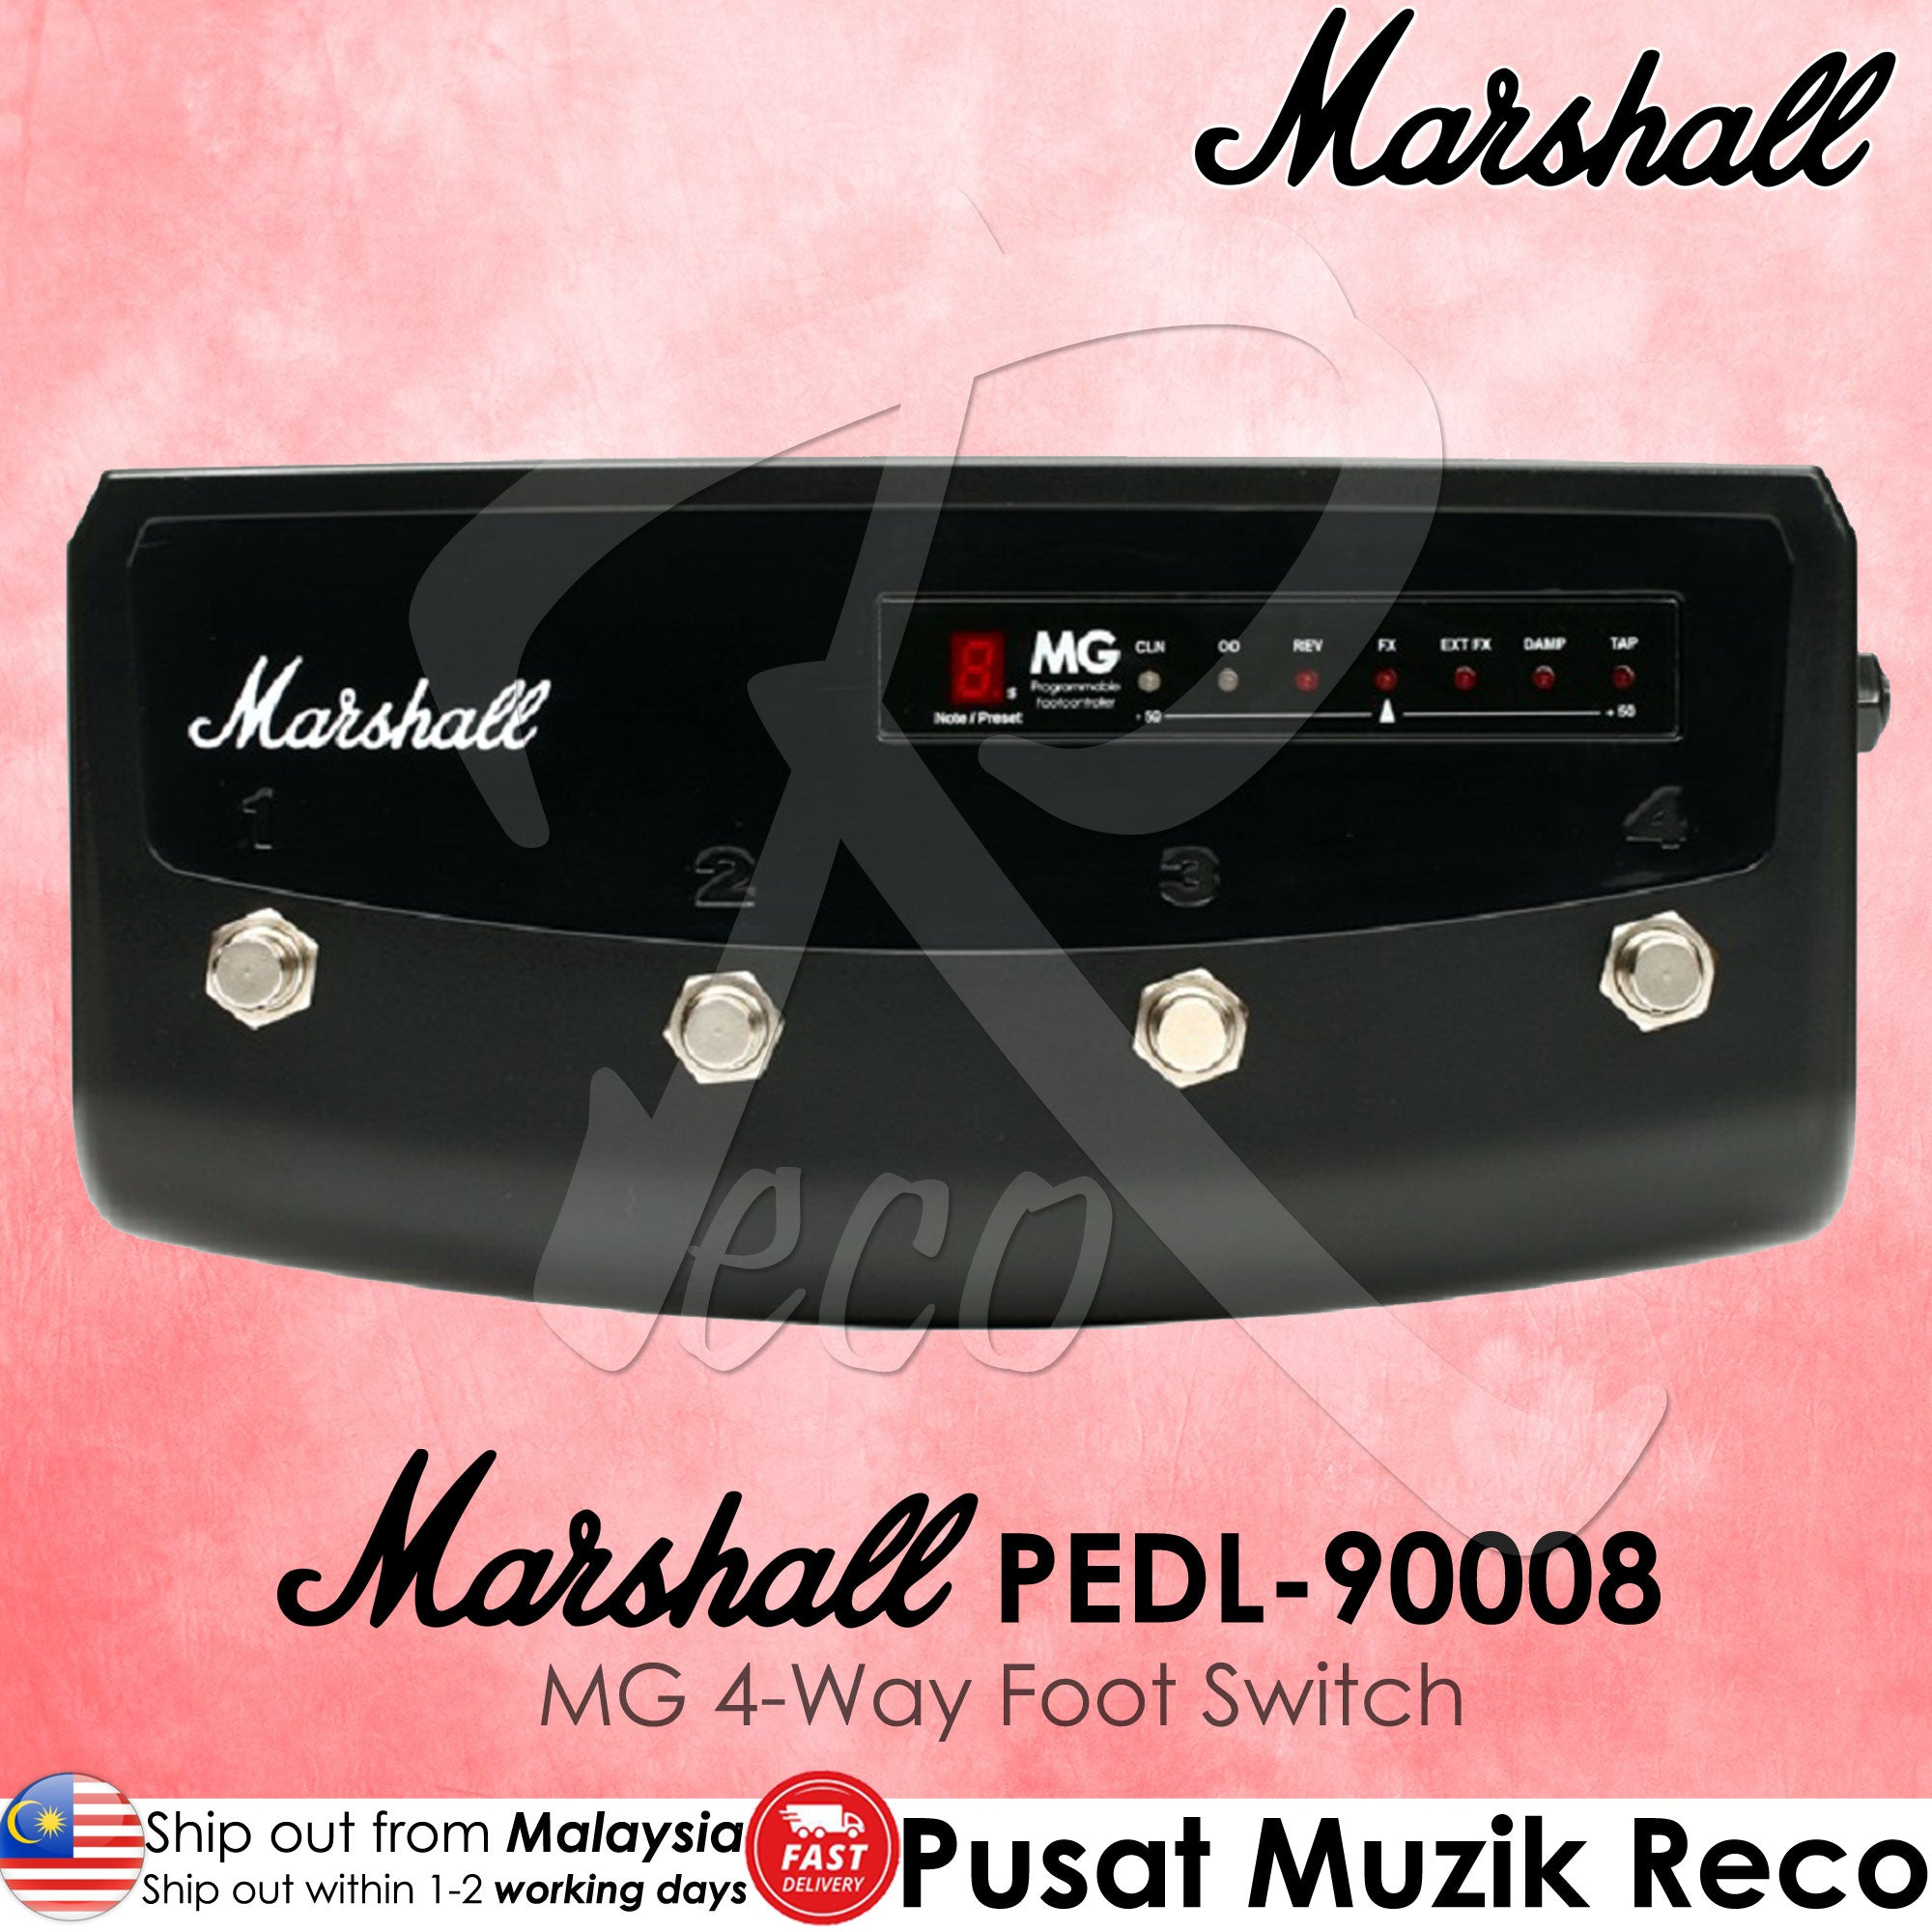 Marshall PEDL-90008 MG 4-Way Footswitch | Reco Music Malaysia